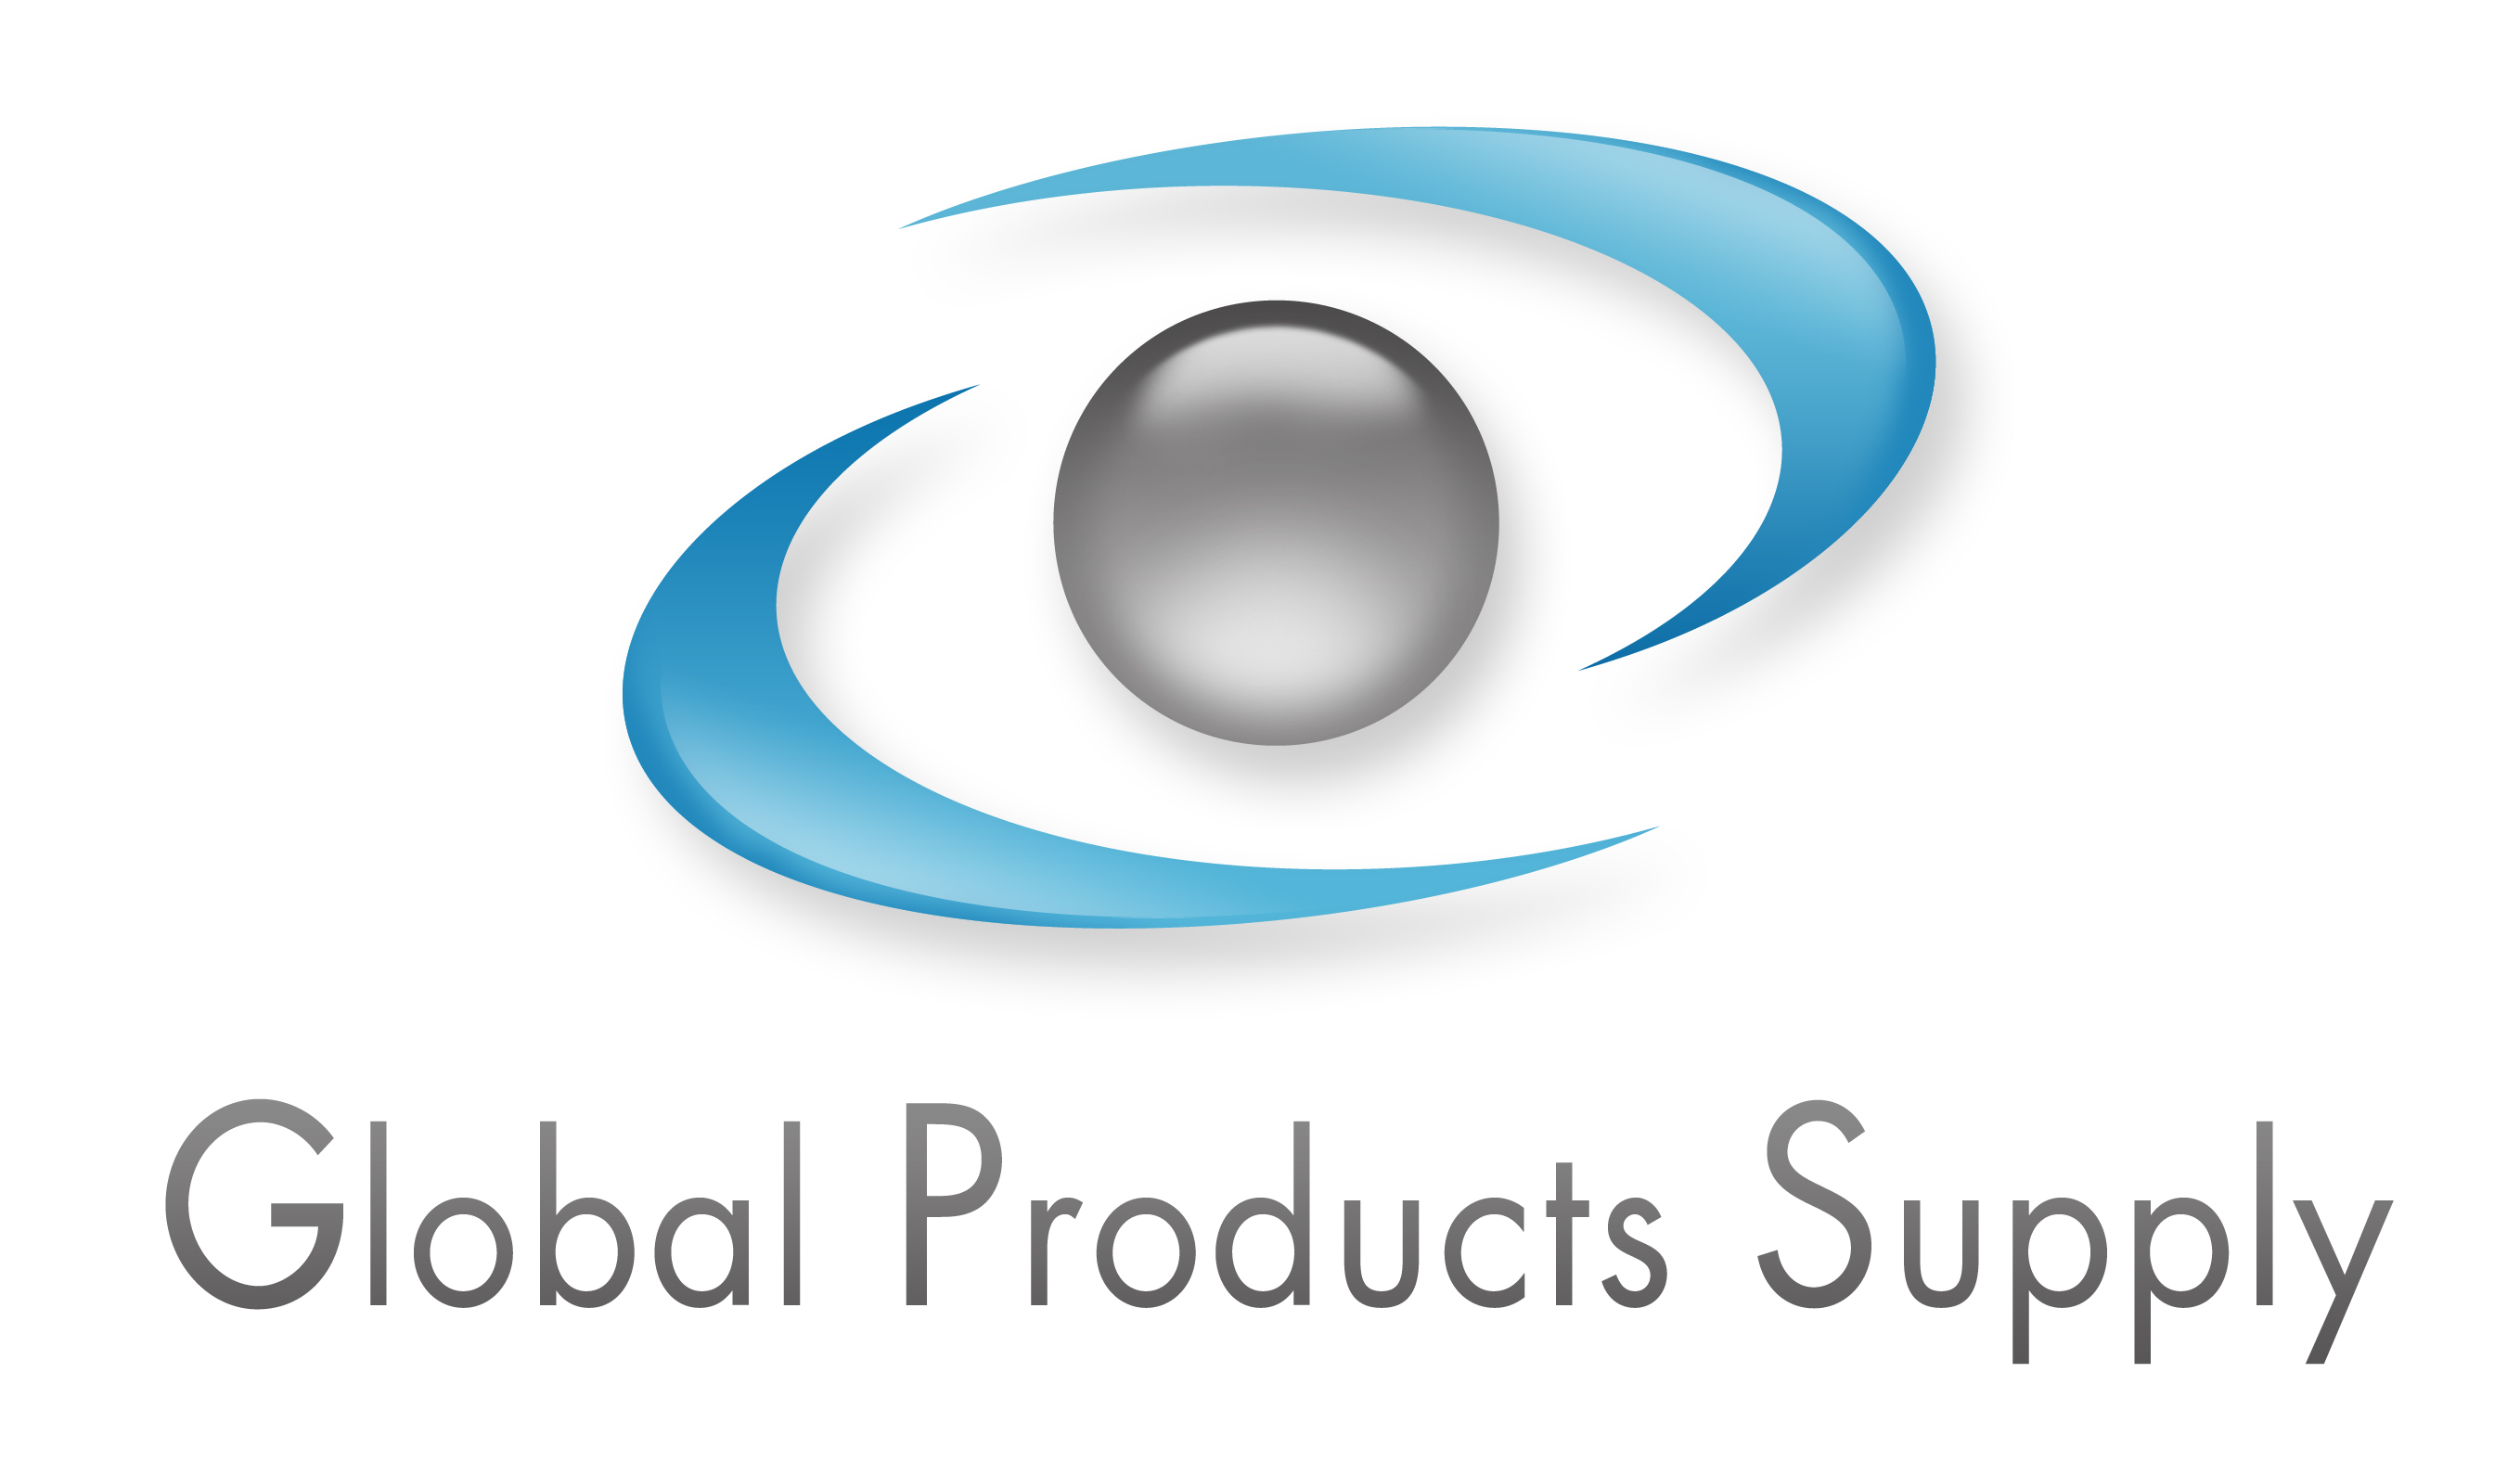 Global Products Supply